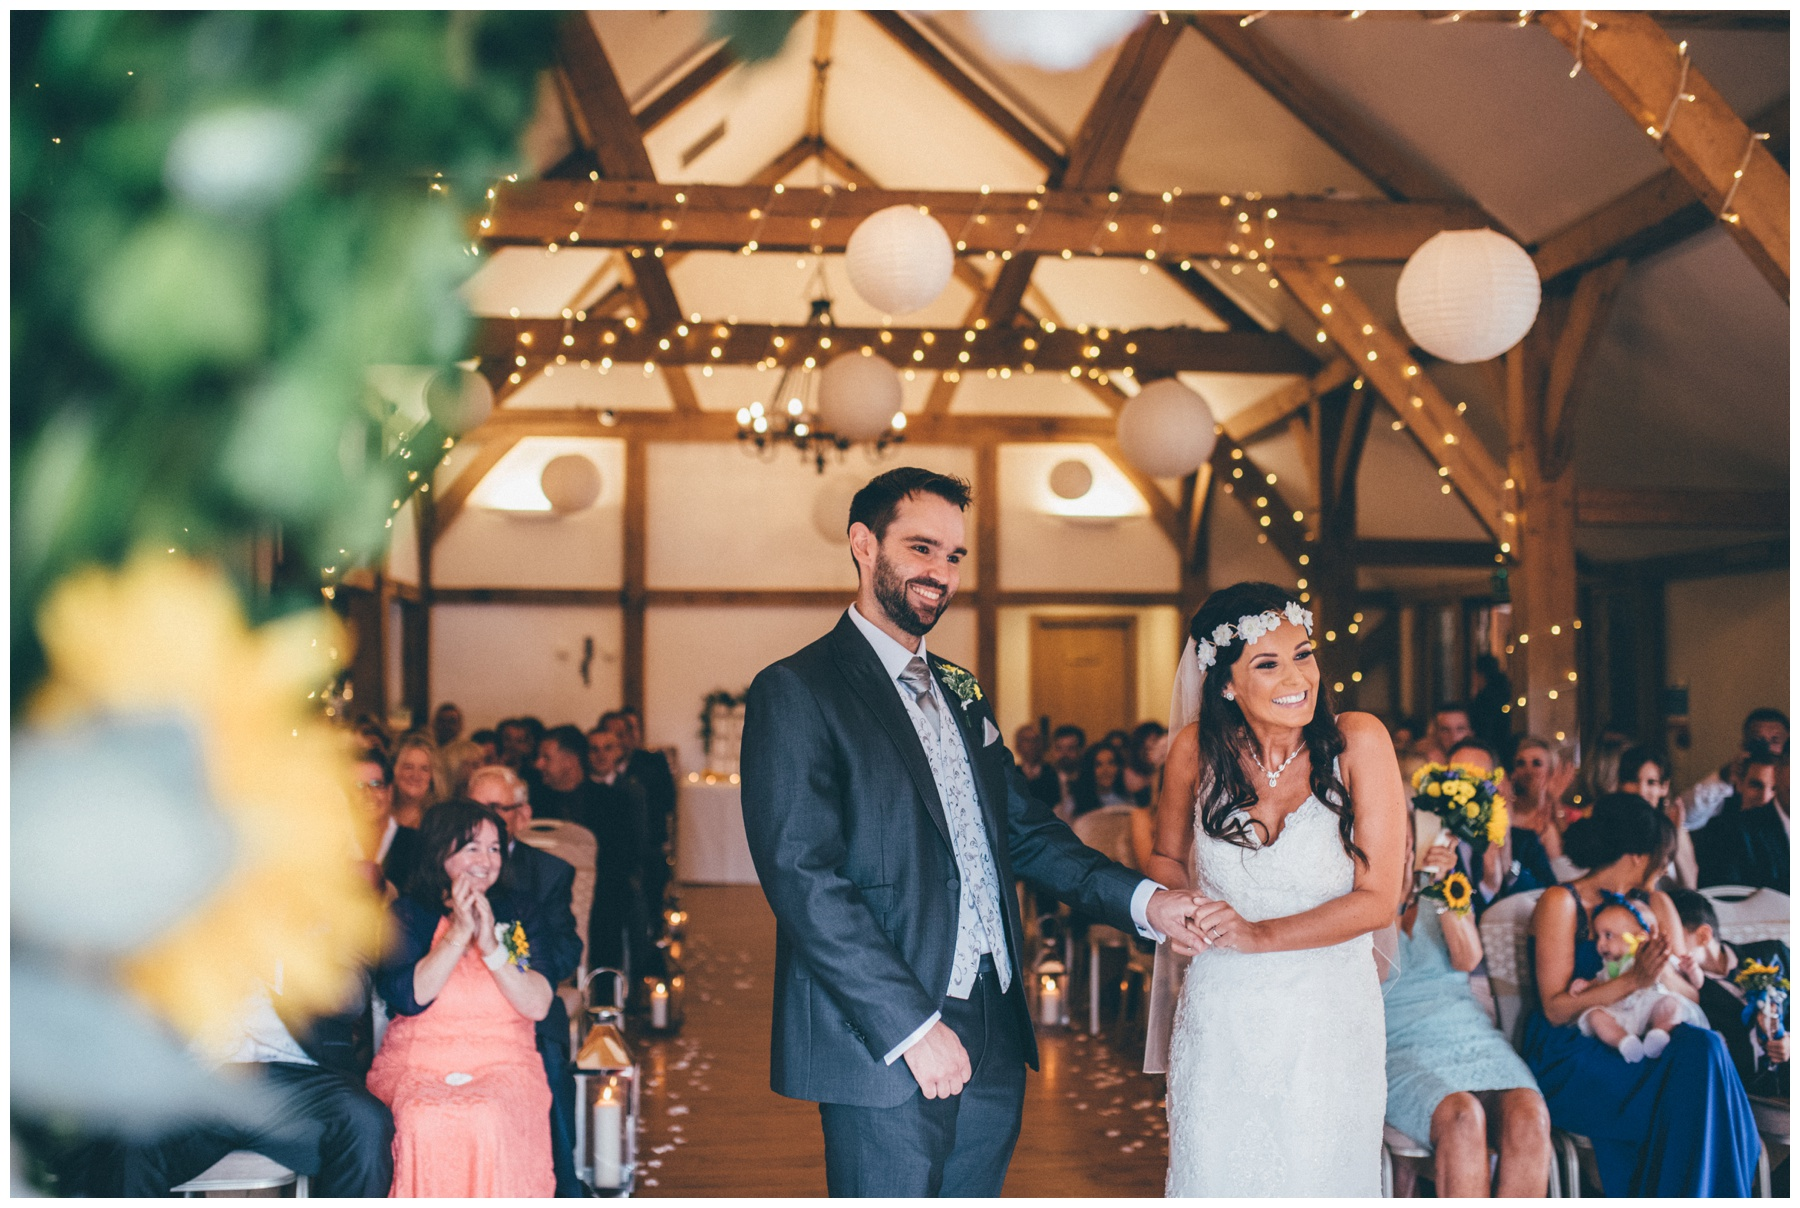 Bride and Groom get announced finally as husband and wife at Sandhole Oak Barn wedding in Cheshire.